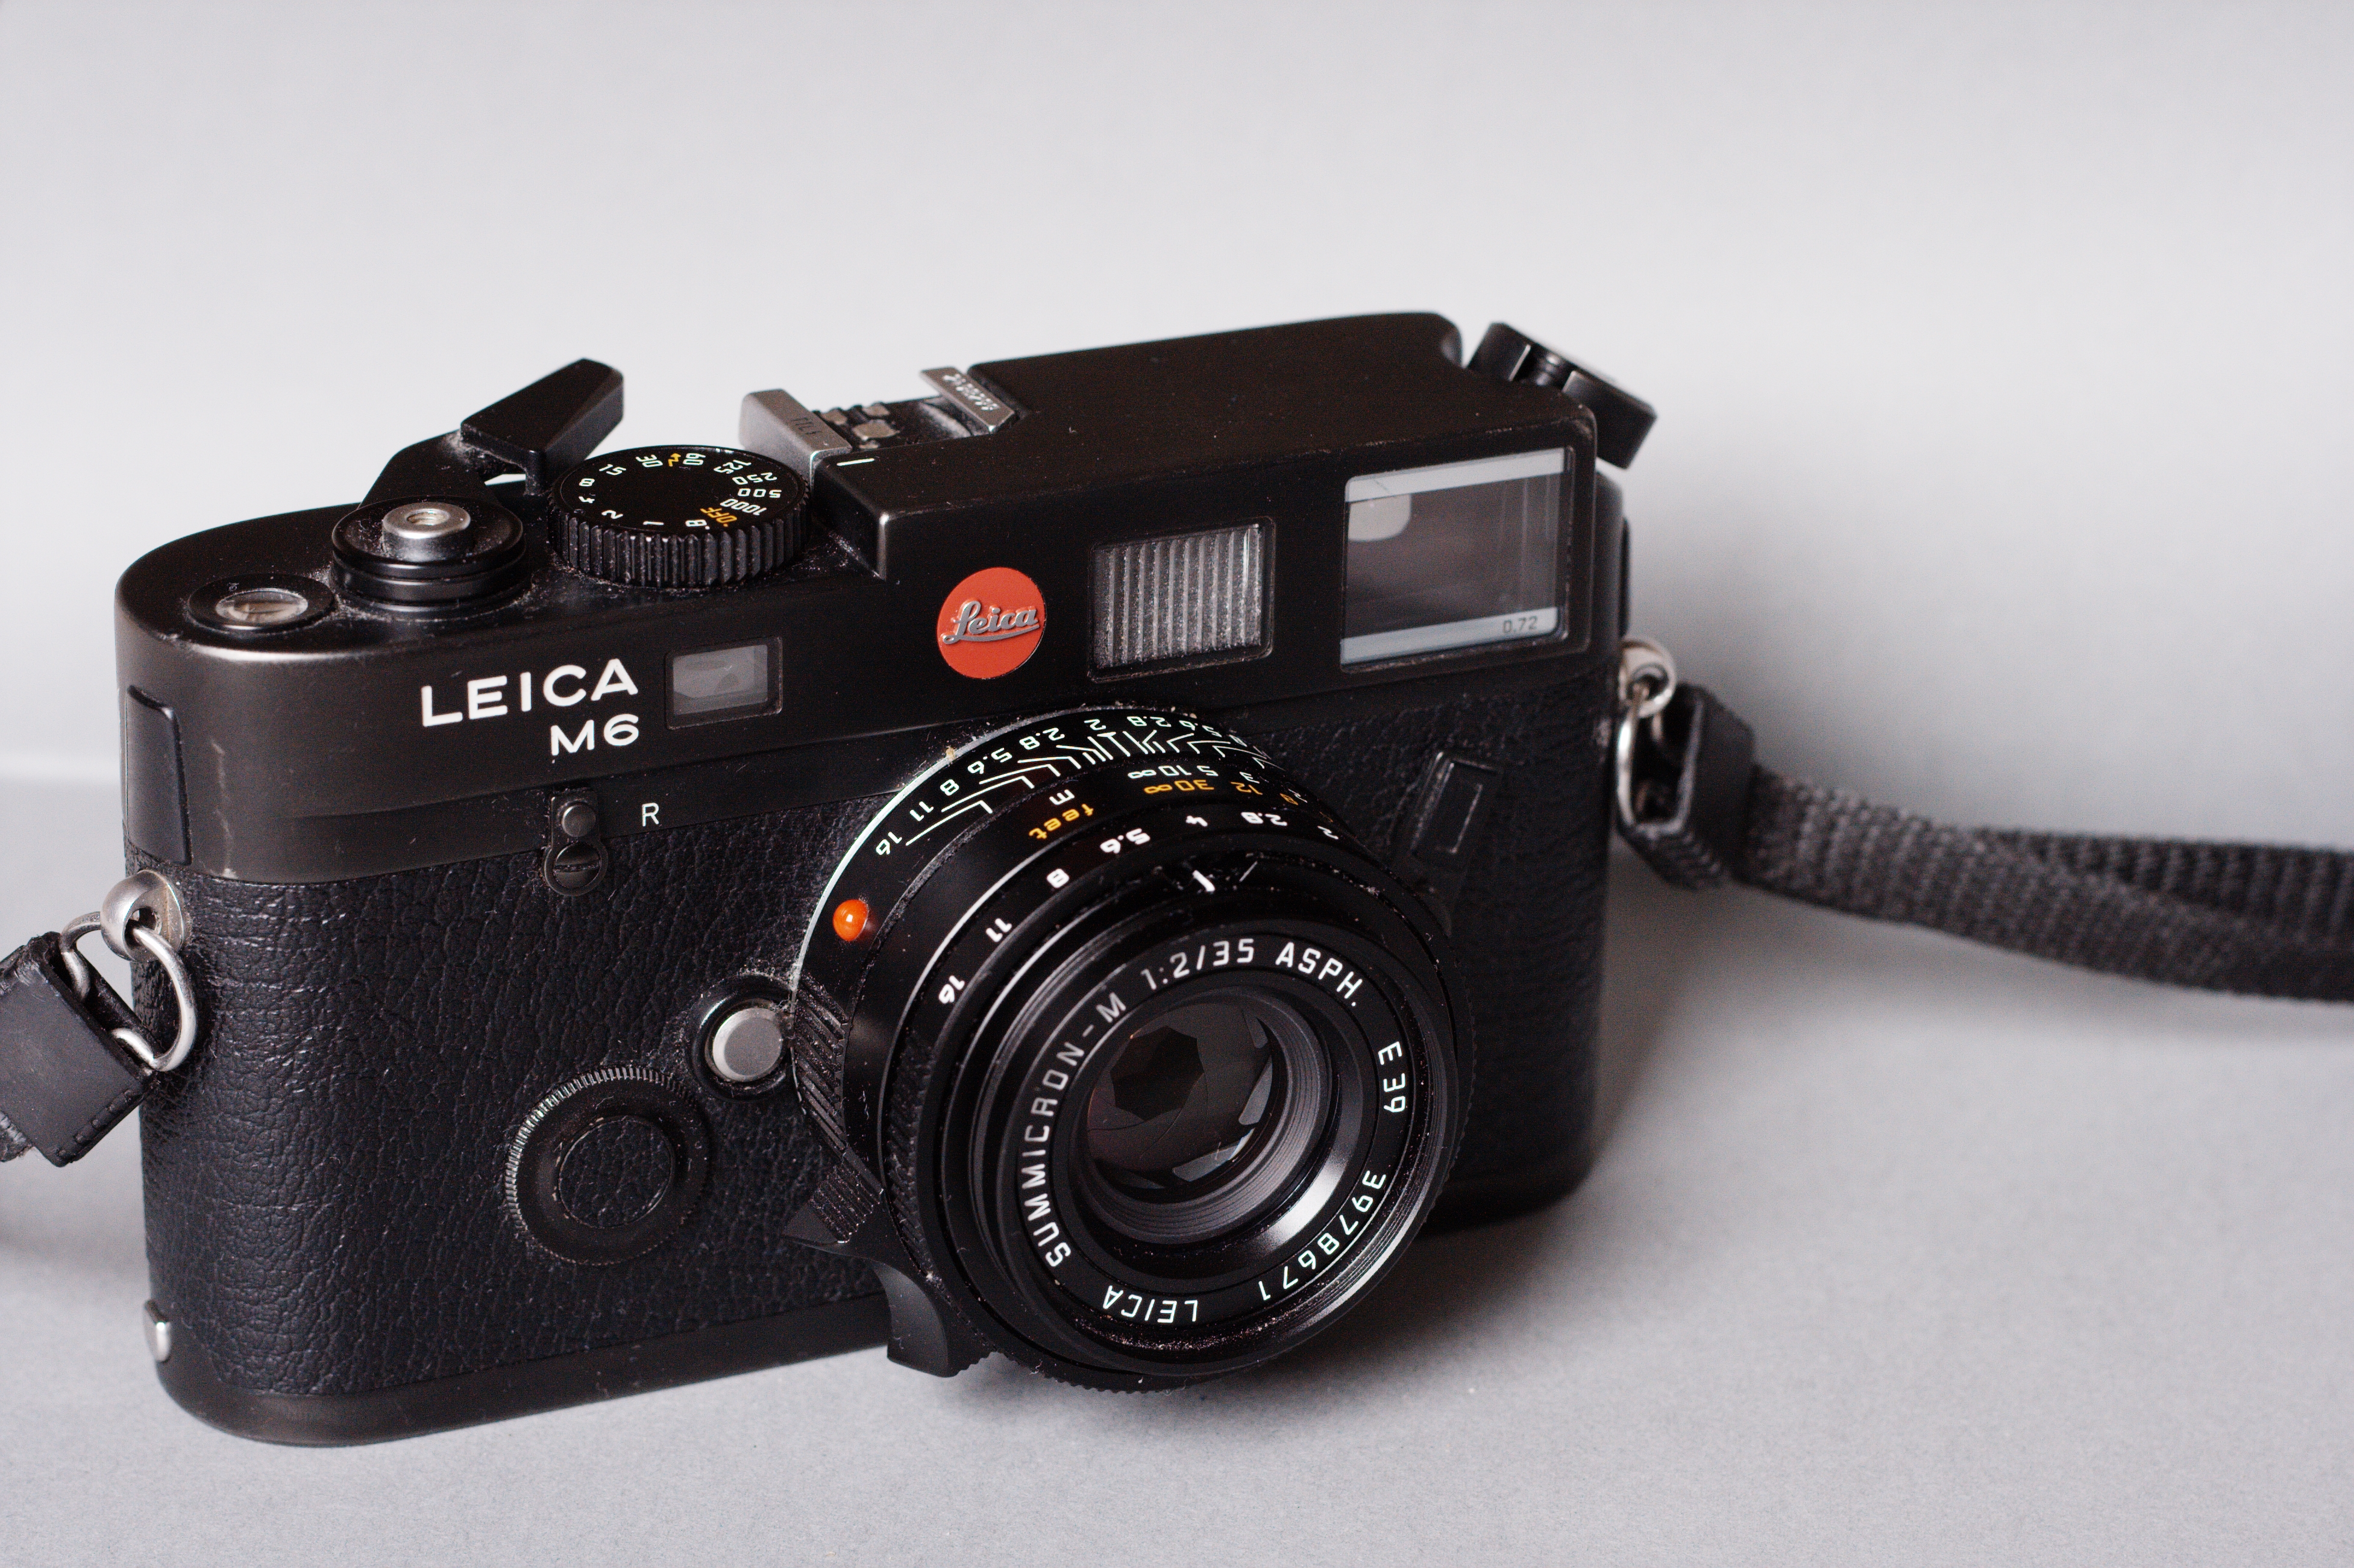 Leica M6 TTL (Pic: Thomas Claveirole/Wikimedia Commons)